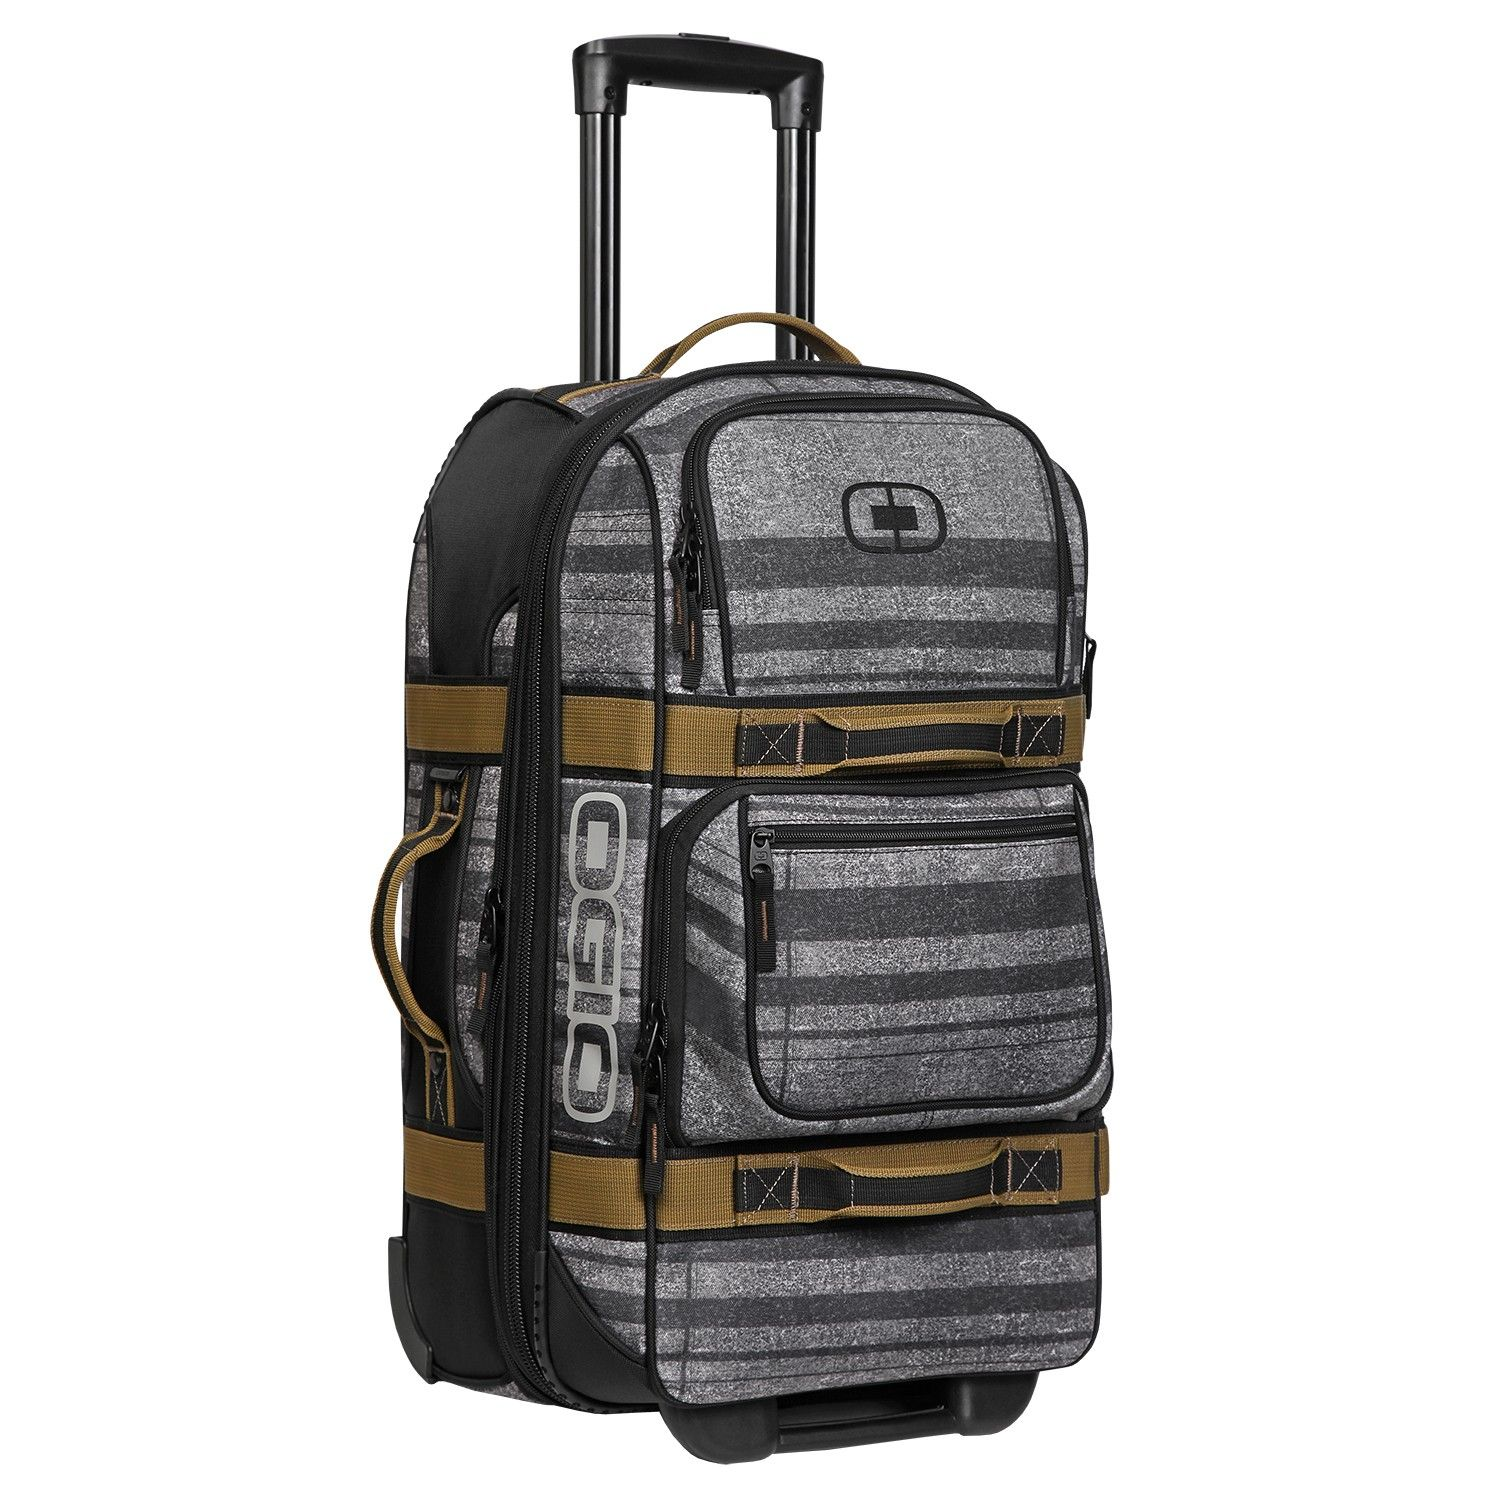 8355e22ca416 Layover Rolling Carry-On Luggage Bag from OGIO | Travel With It ...